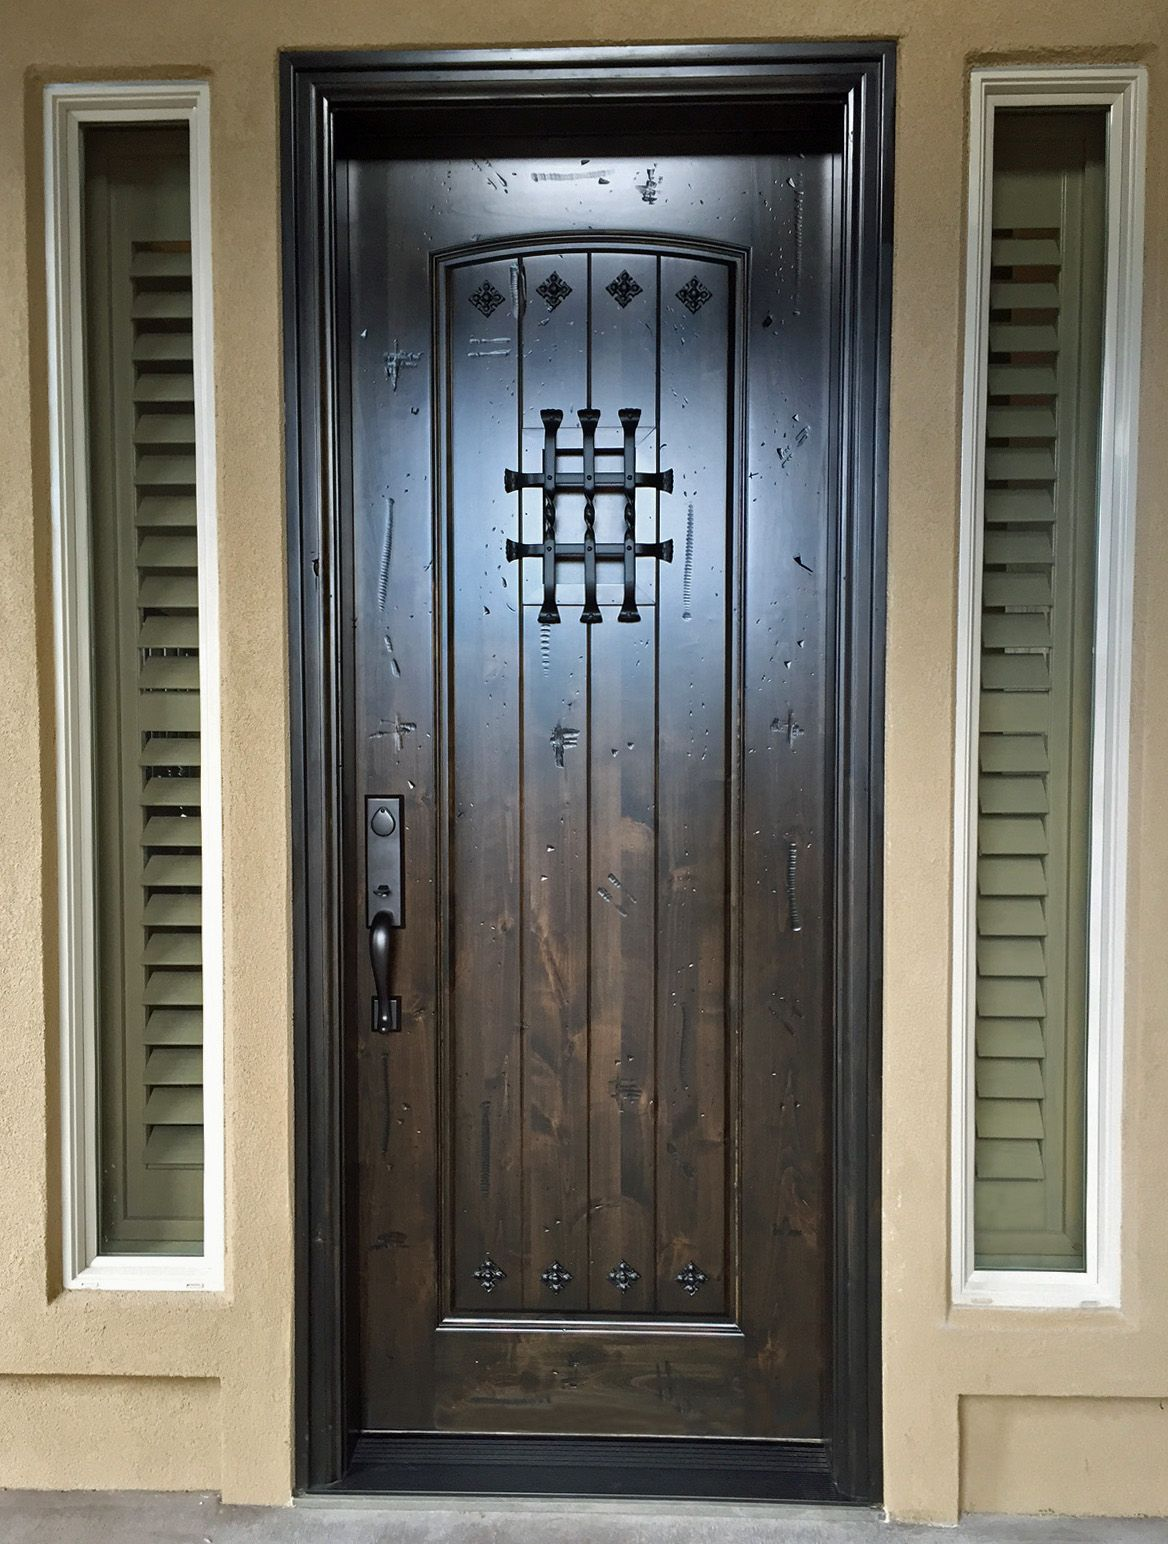 Details Create Old World Charm In This New Knotty Alder Entry Door